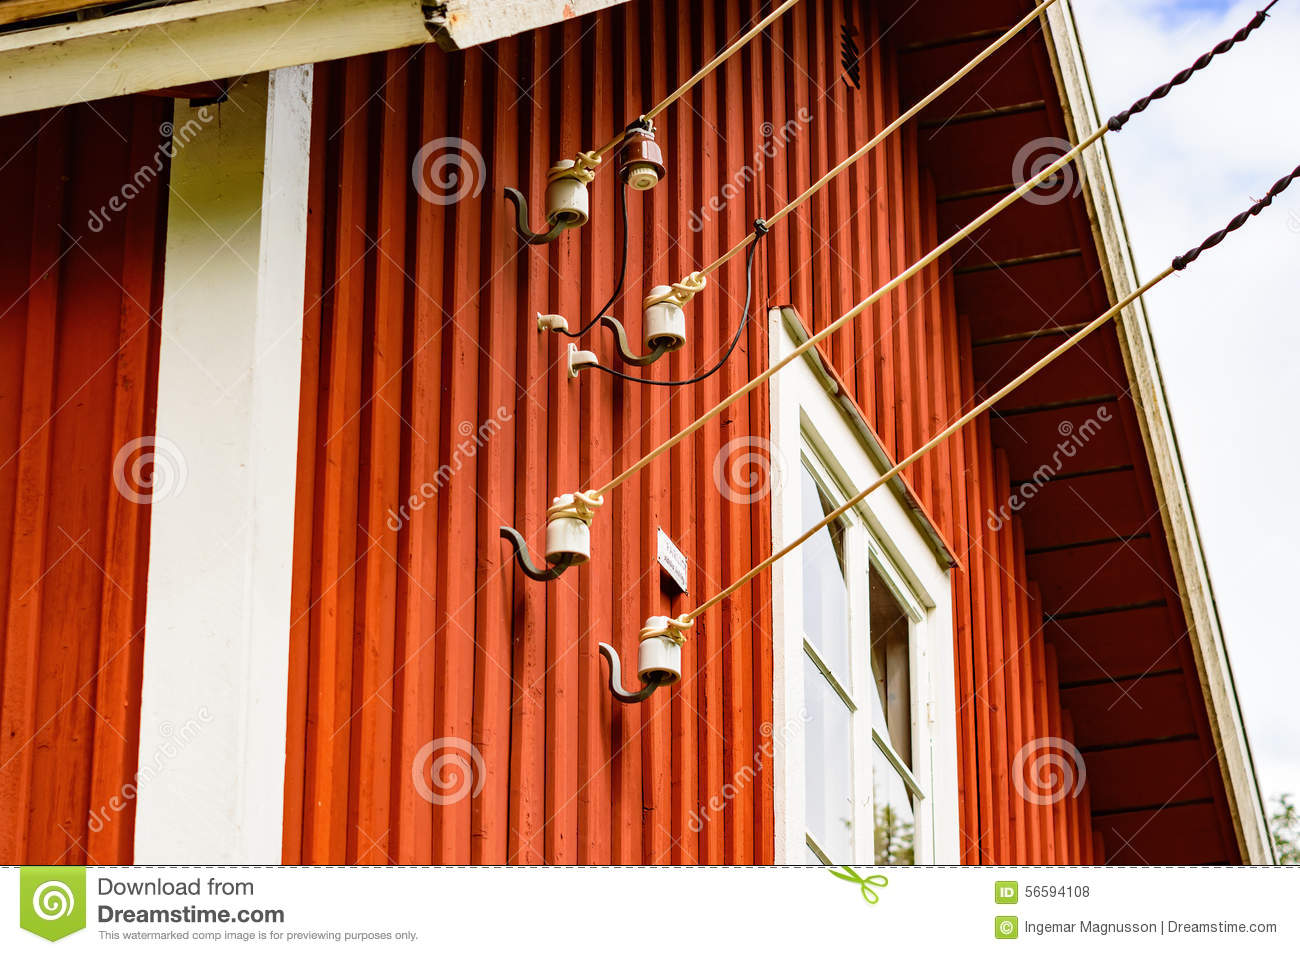 Electric wire on house stock photo. Image of electricity - 56594108